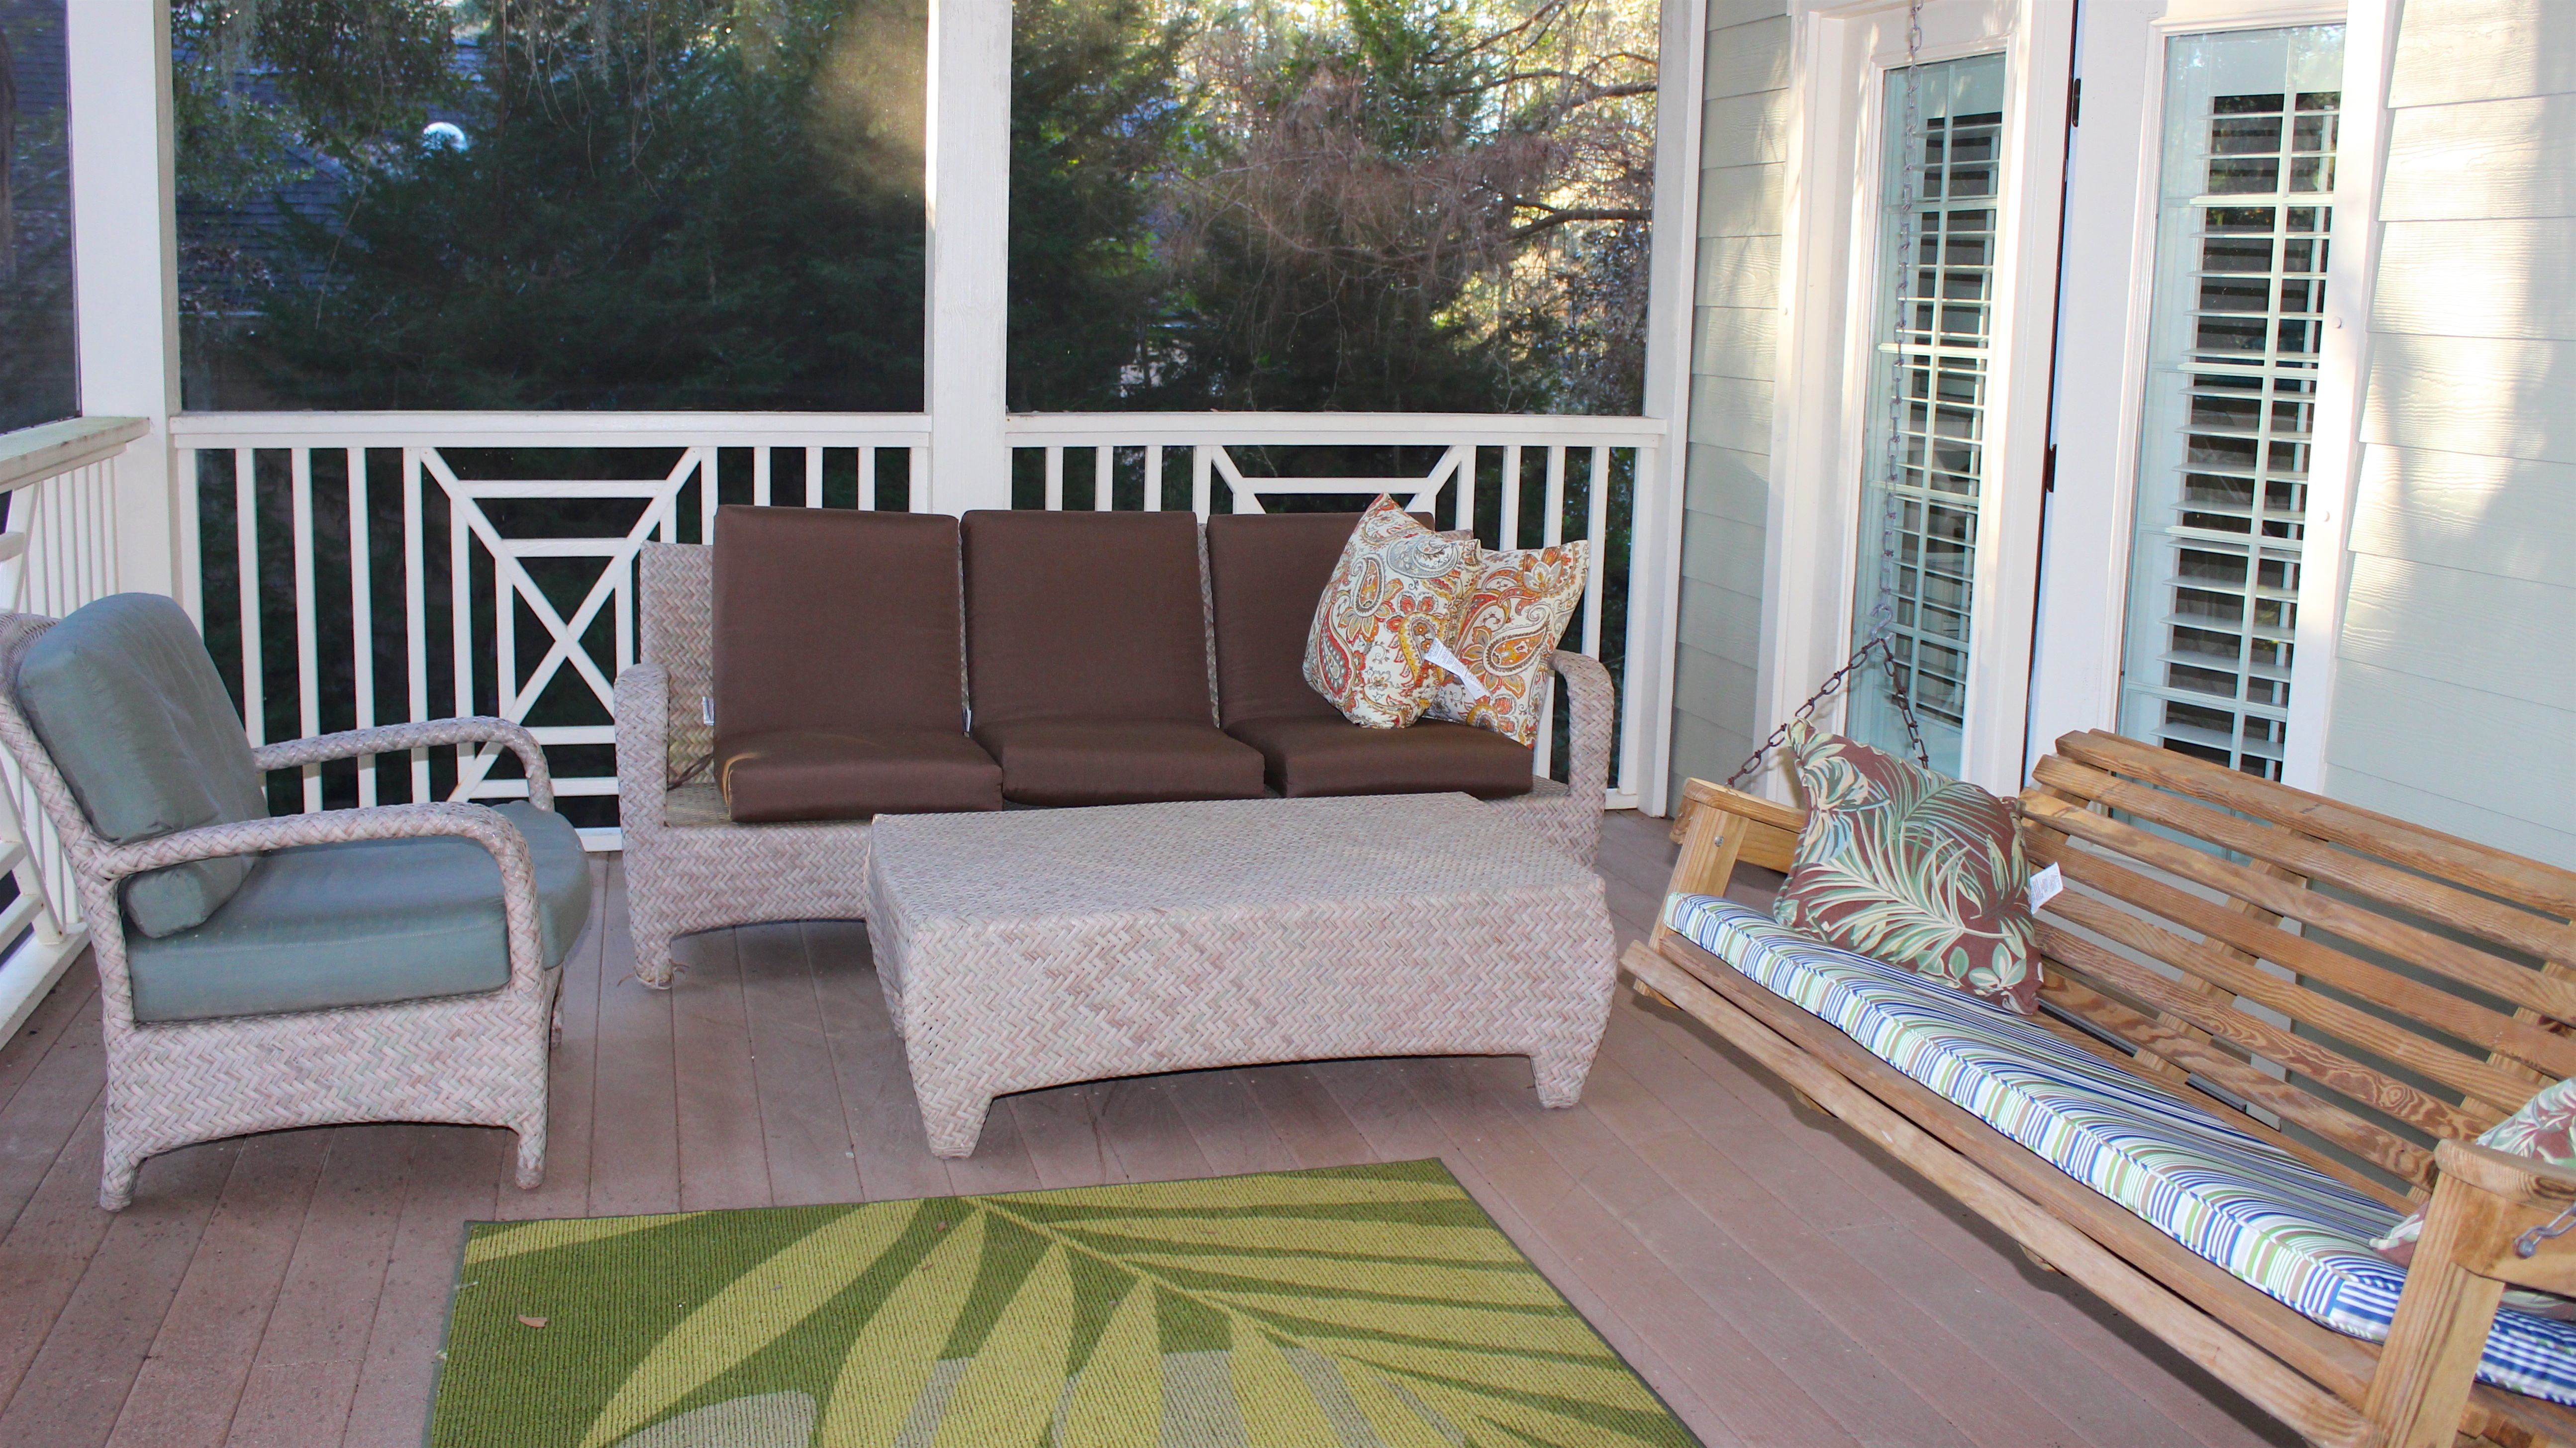 The screened porch has a seating area with a porch swing.